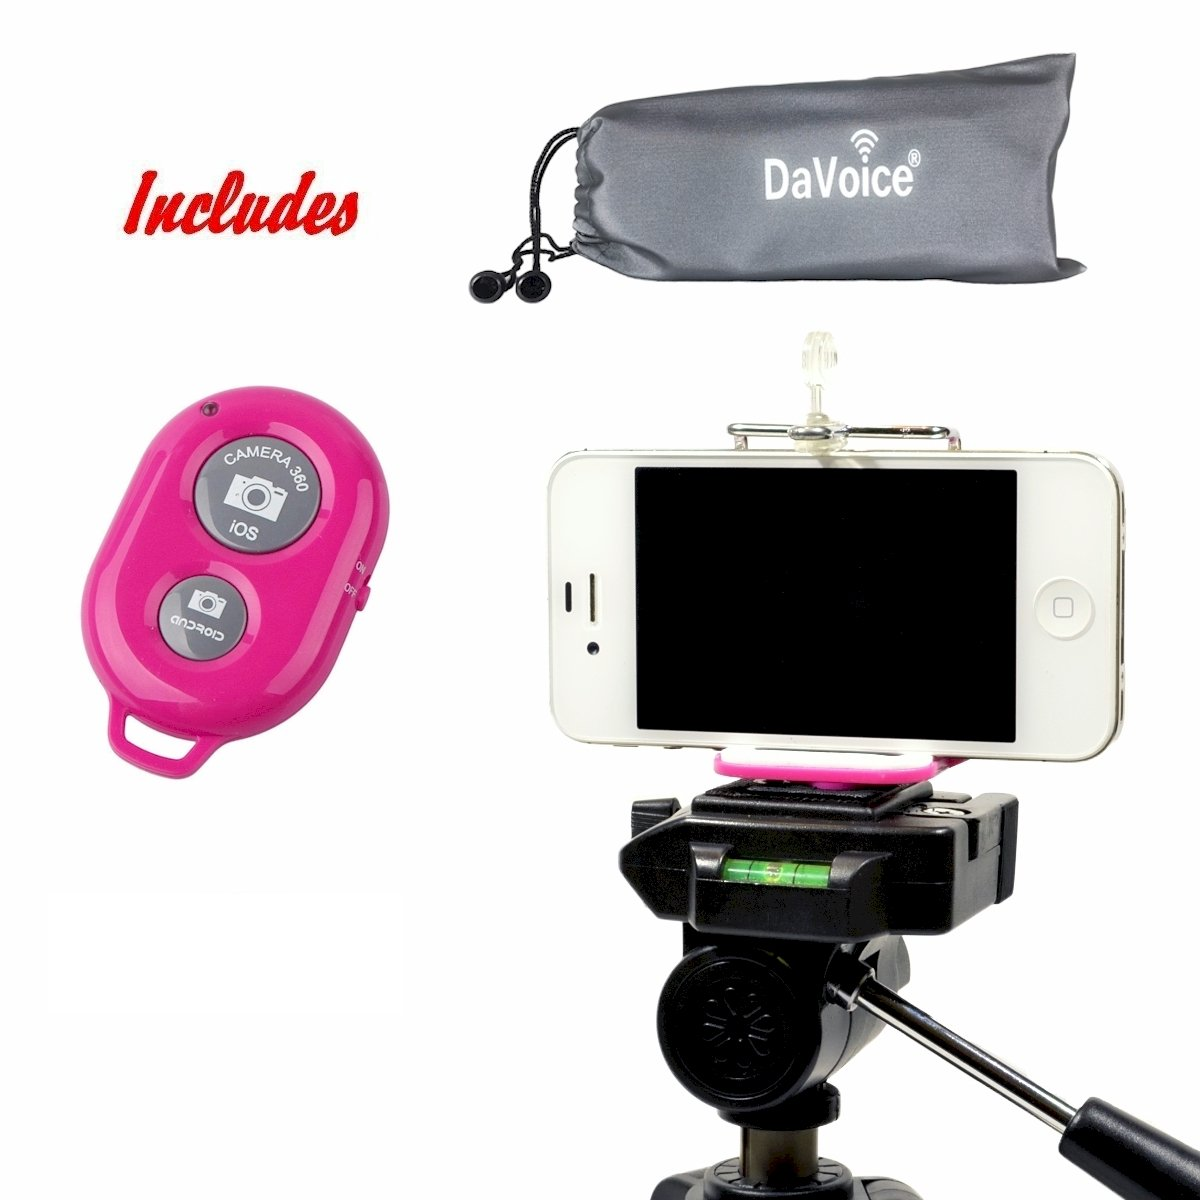 DaVoice Cell Phone Tripod Mount Adapter Holder + Bluetooth Remote Control + Carry Bag for iPhone X Se 8 7 6 6s Plus 5 5s 5c Samsung Galaxy S9 S8 S7 S6 S5 Edge Universal Bracket Attachment (Hot Pink)